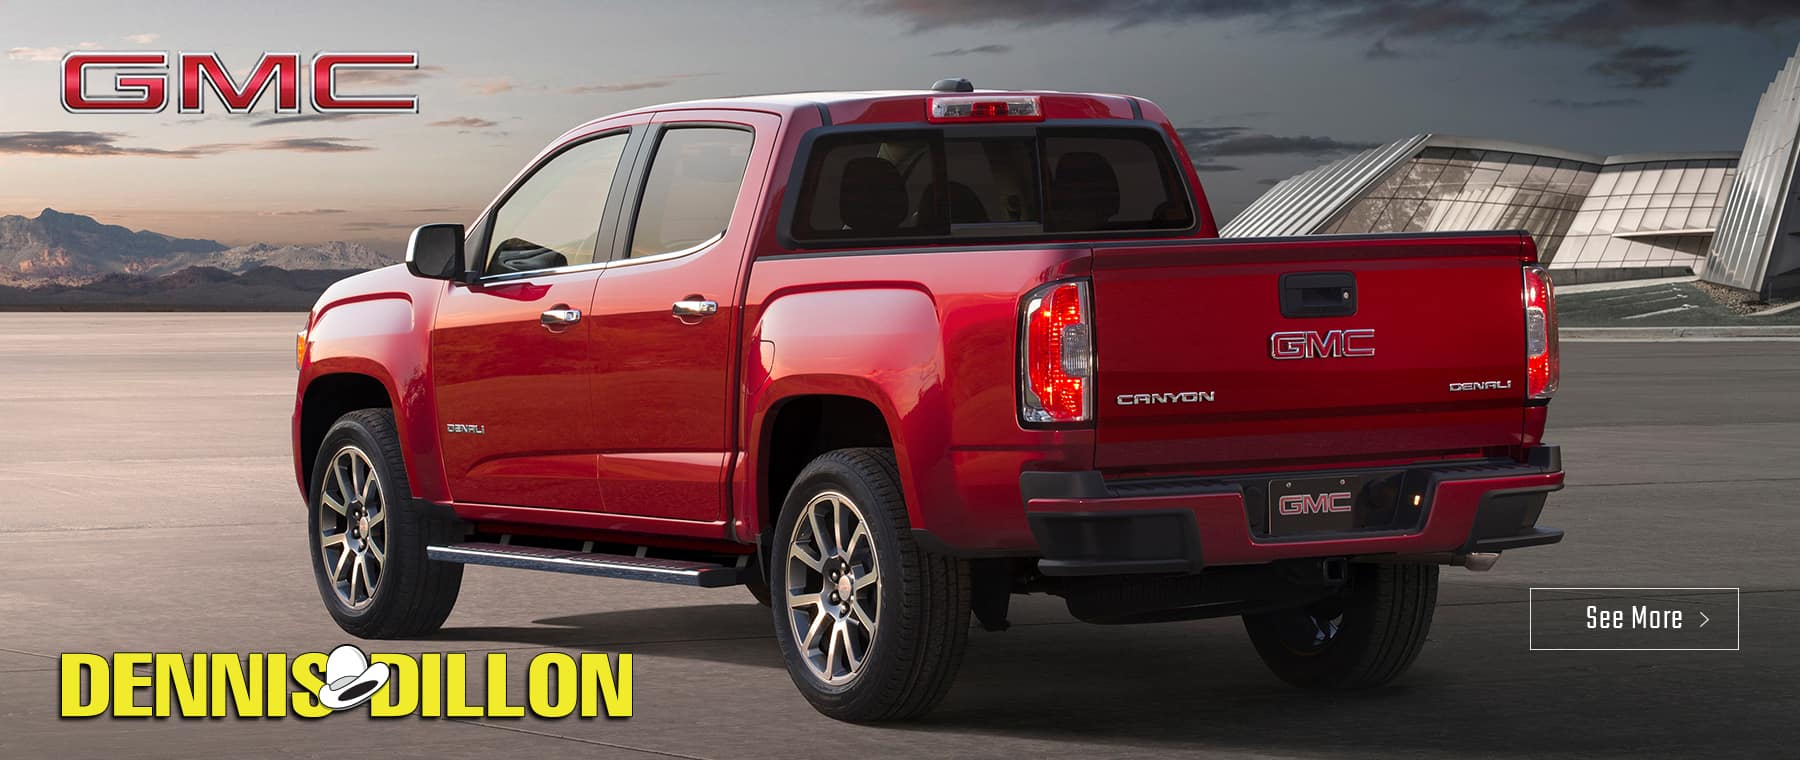 Dennis Dillon Gmc >> Dennis Dillon Automotive | New and Used Car Dealer